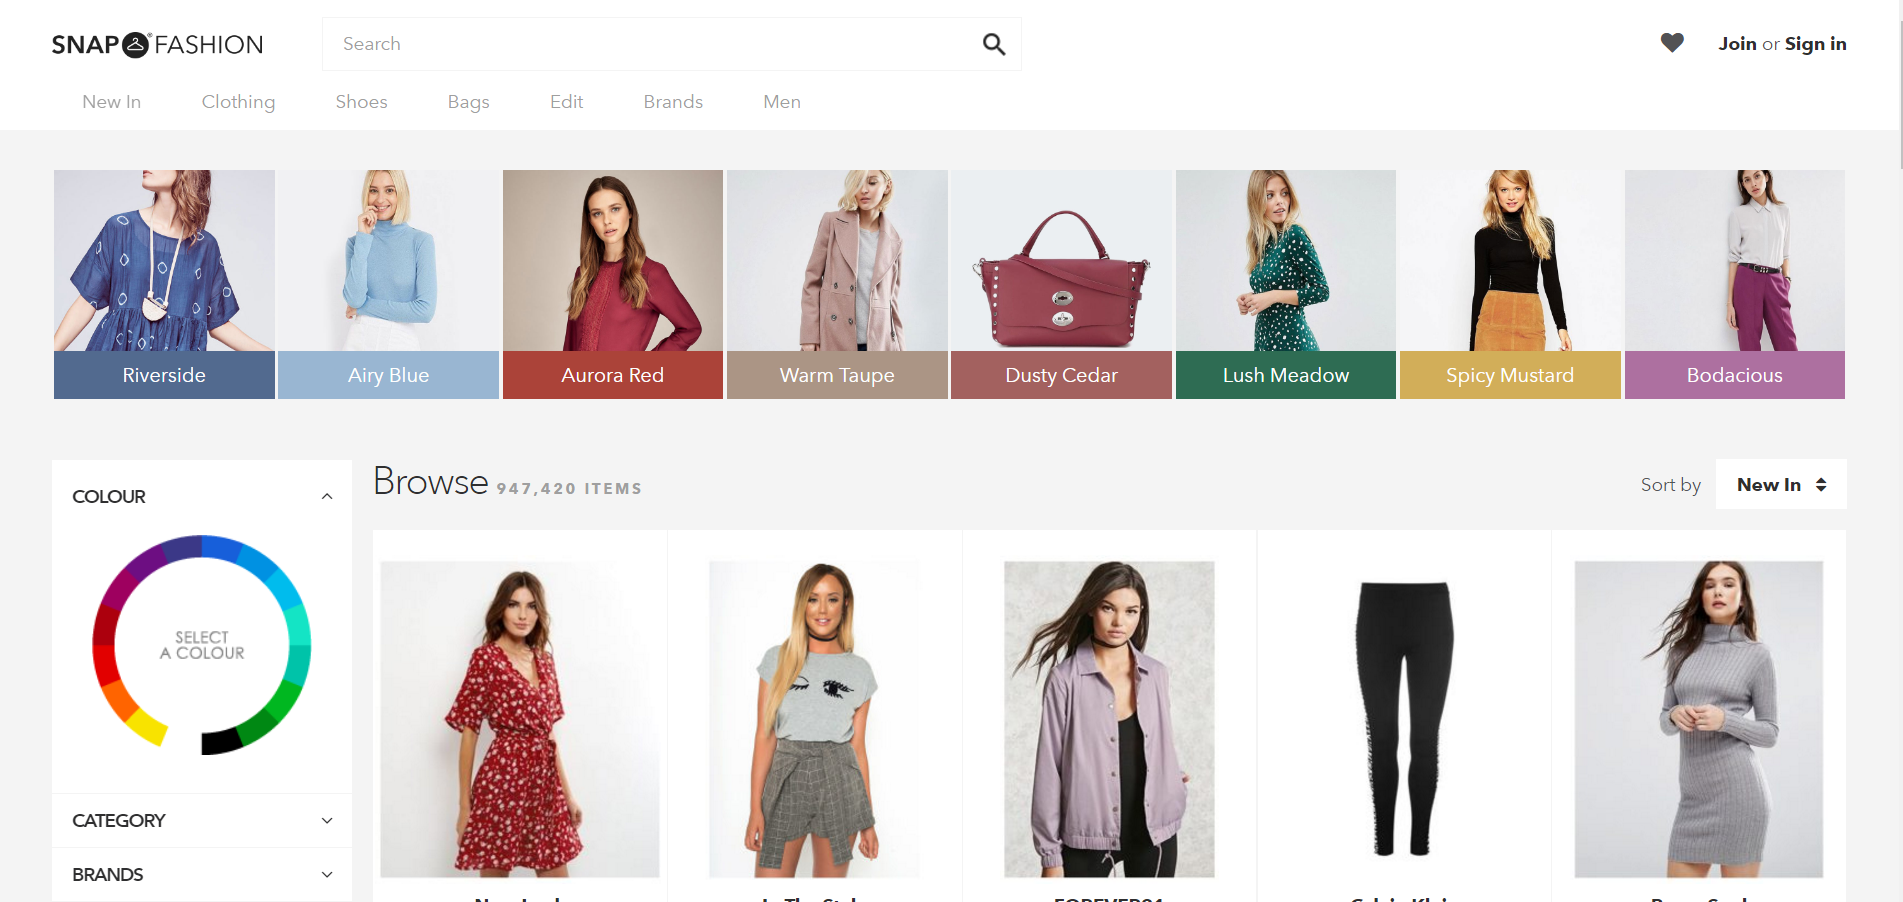 Browse - Snap Fashion - Shop Fashion in a Snap